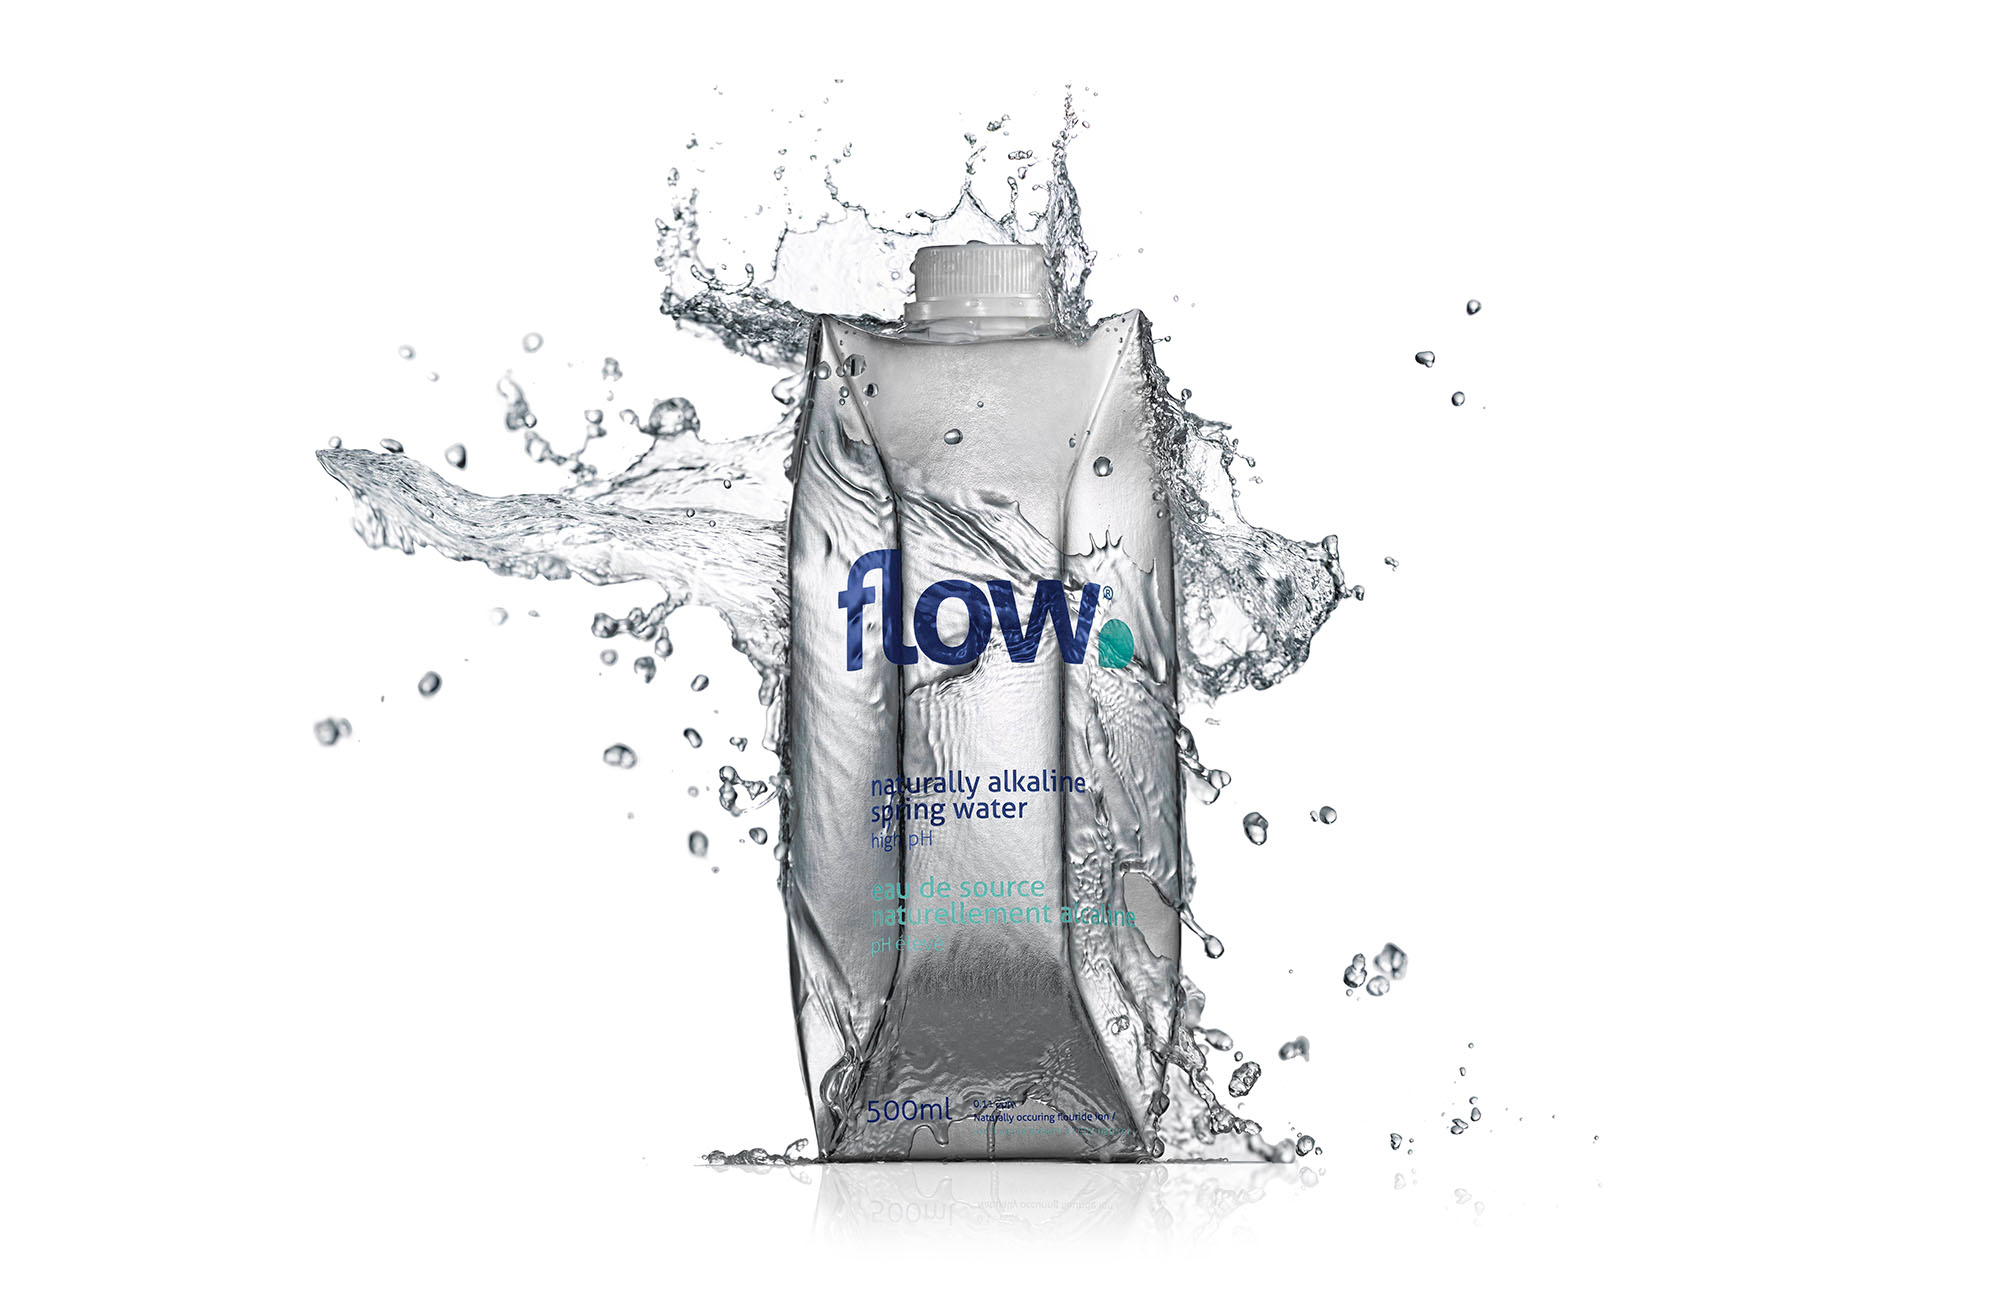 Flow water is nurtured for thousands of years in a deep,